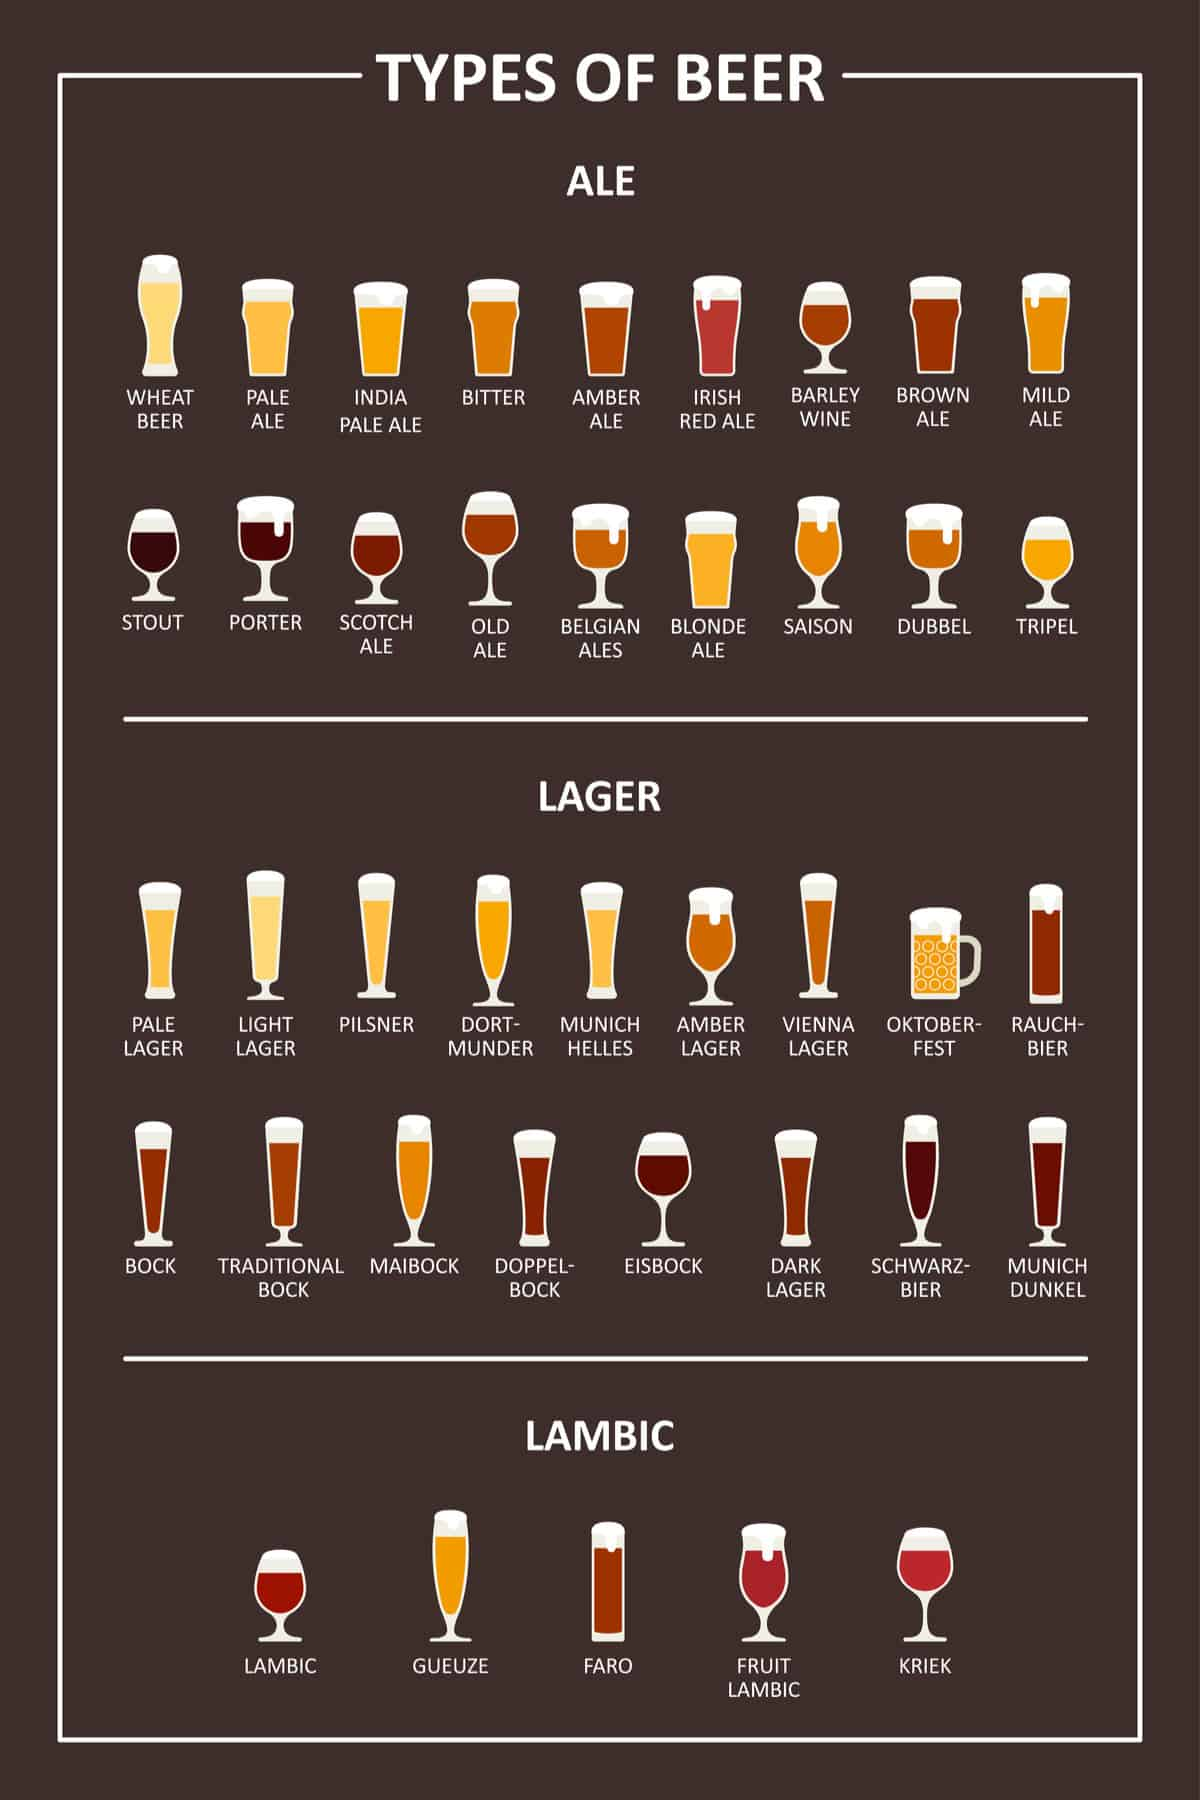 42 Different Types of Beer  How Well Do You Know Your